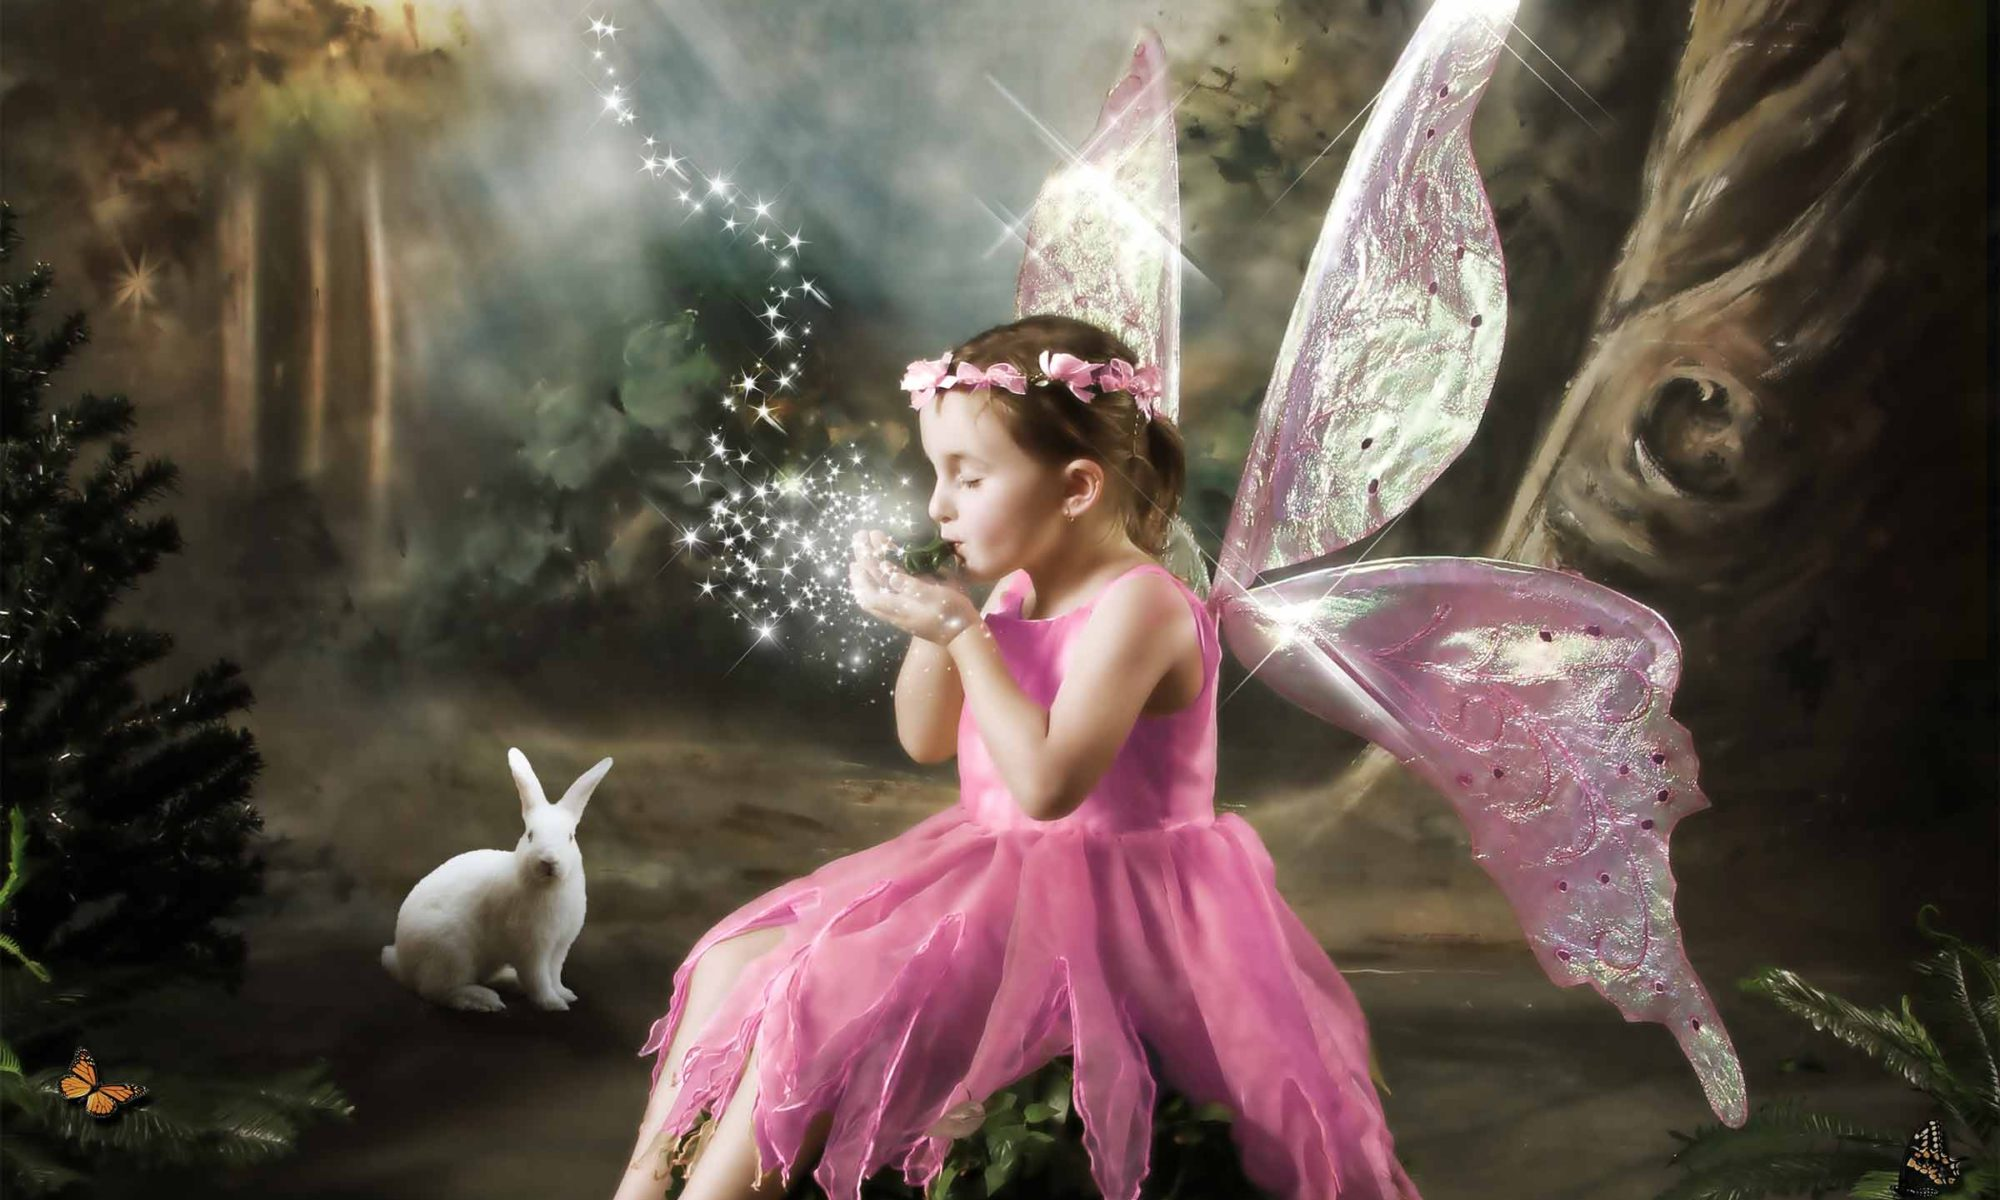 AEV Fairies Photo Art